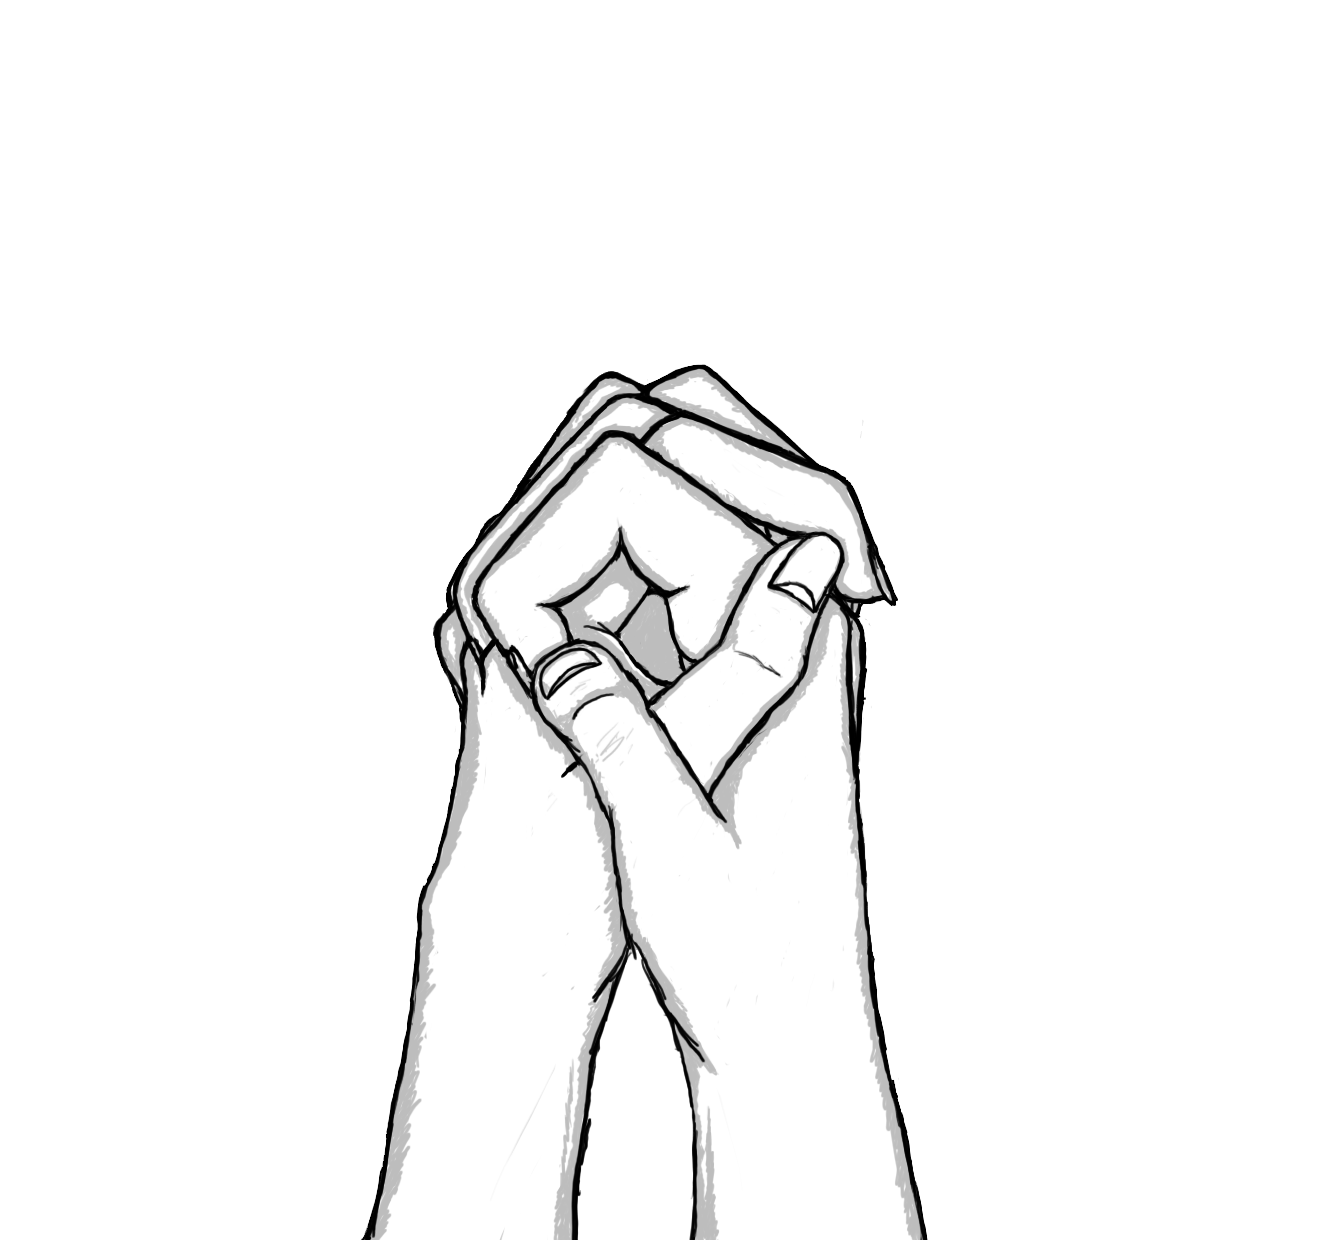 Arms holding clipart jpg freeuse download Free Images Of People Holding Hands, Download Free Clip Art, Free ... jpg freeuse download